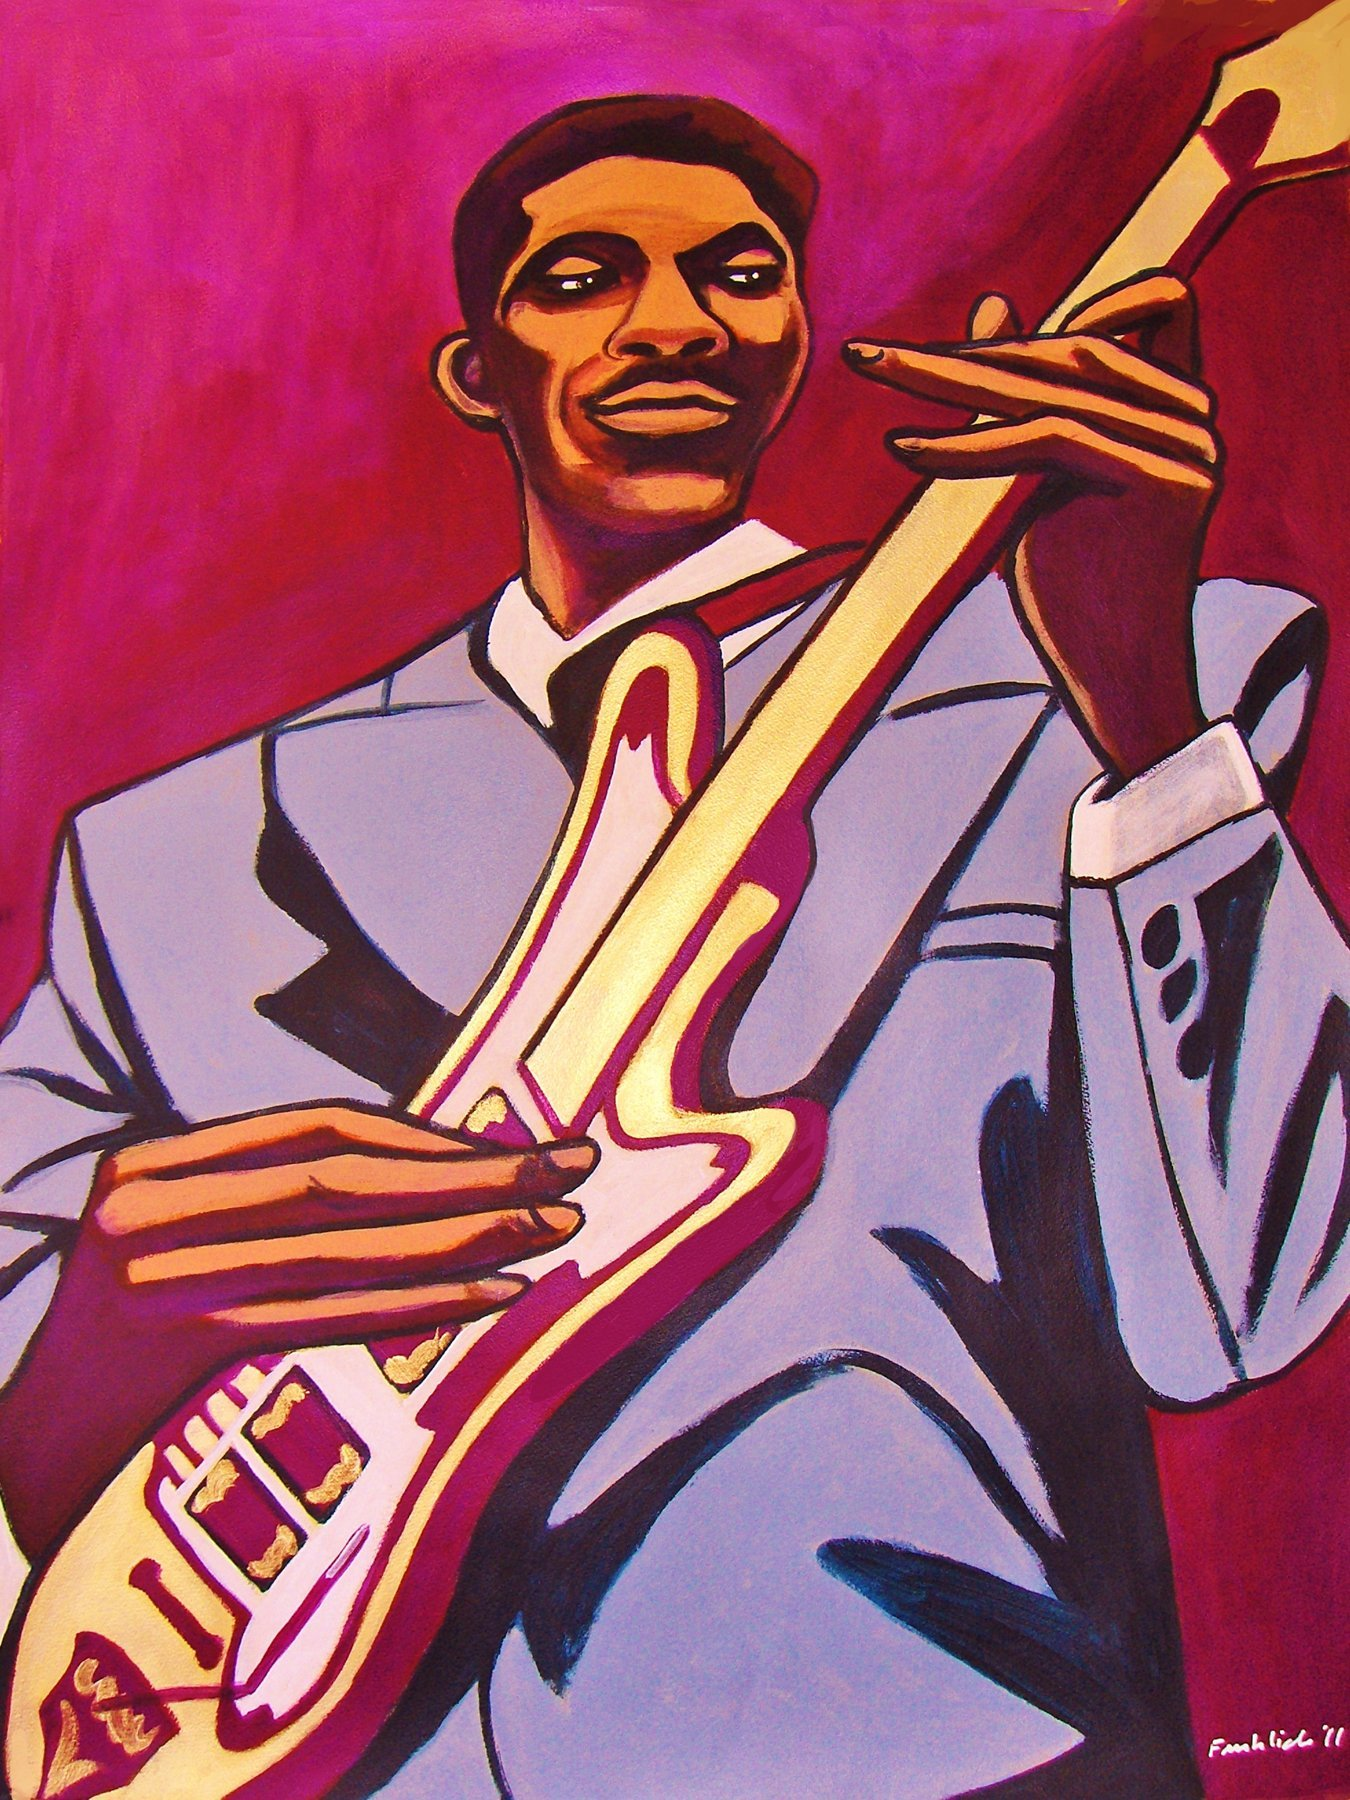 HUBERT SUMLIN PRINT POSTER man cave guitar cd lp record album vinyl gibson les paul bartolini howlin wolf chess chicago about them shoes by FRO-ART